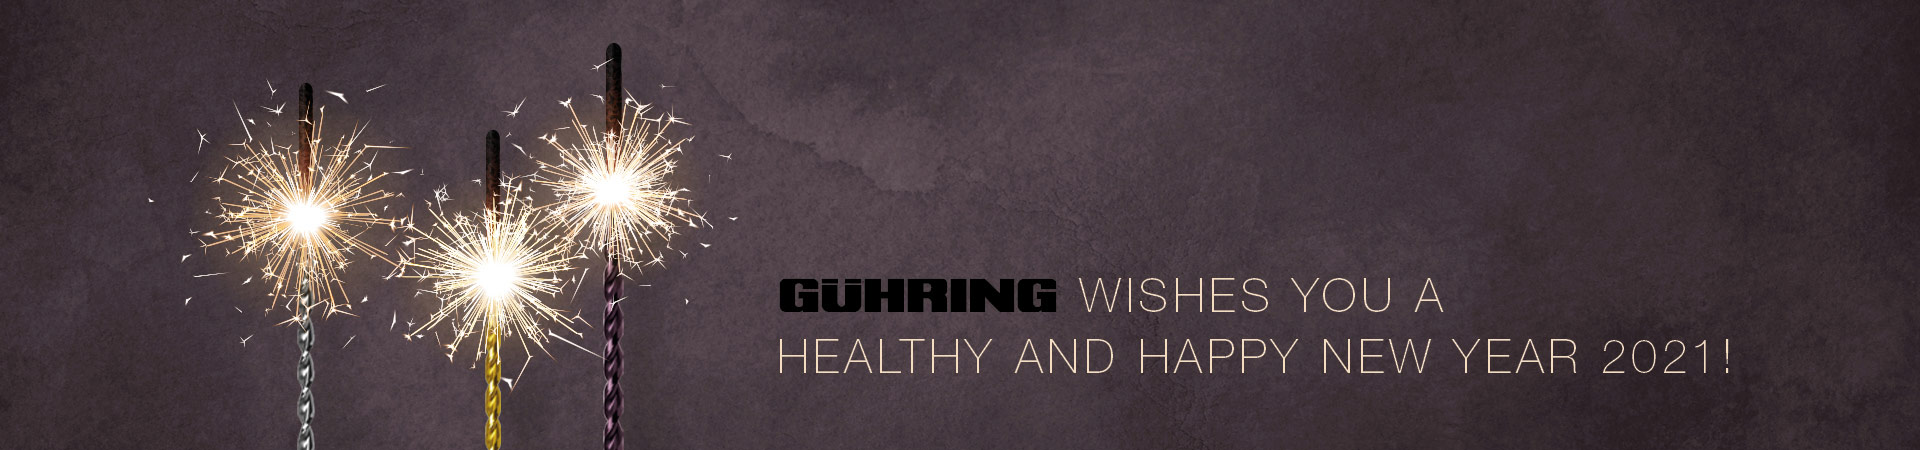 Gühring wishes you a healthy and happy new year 2021!